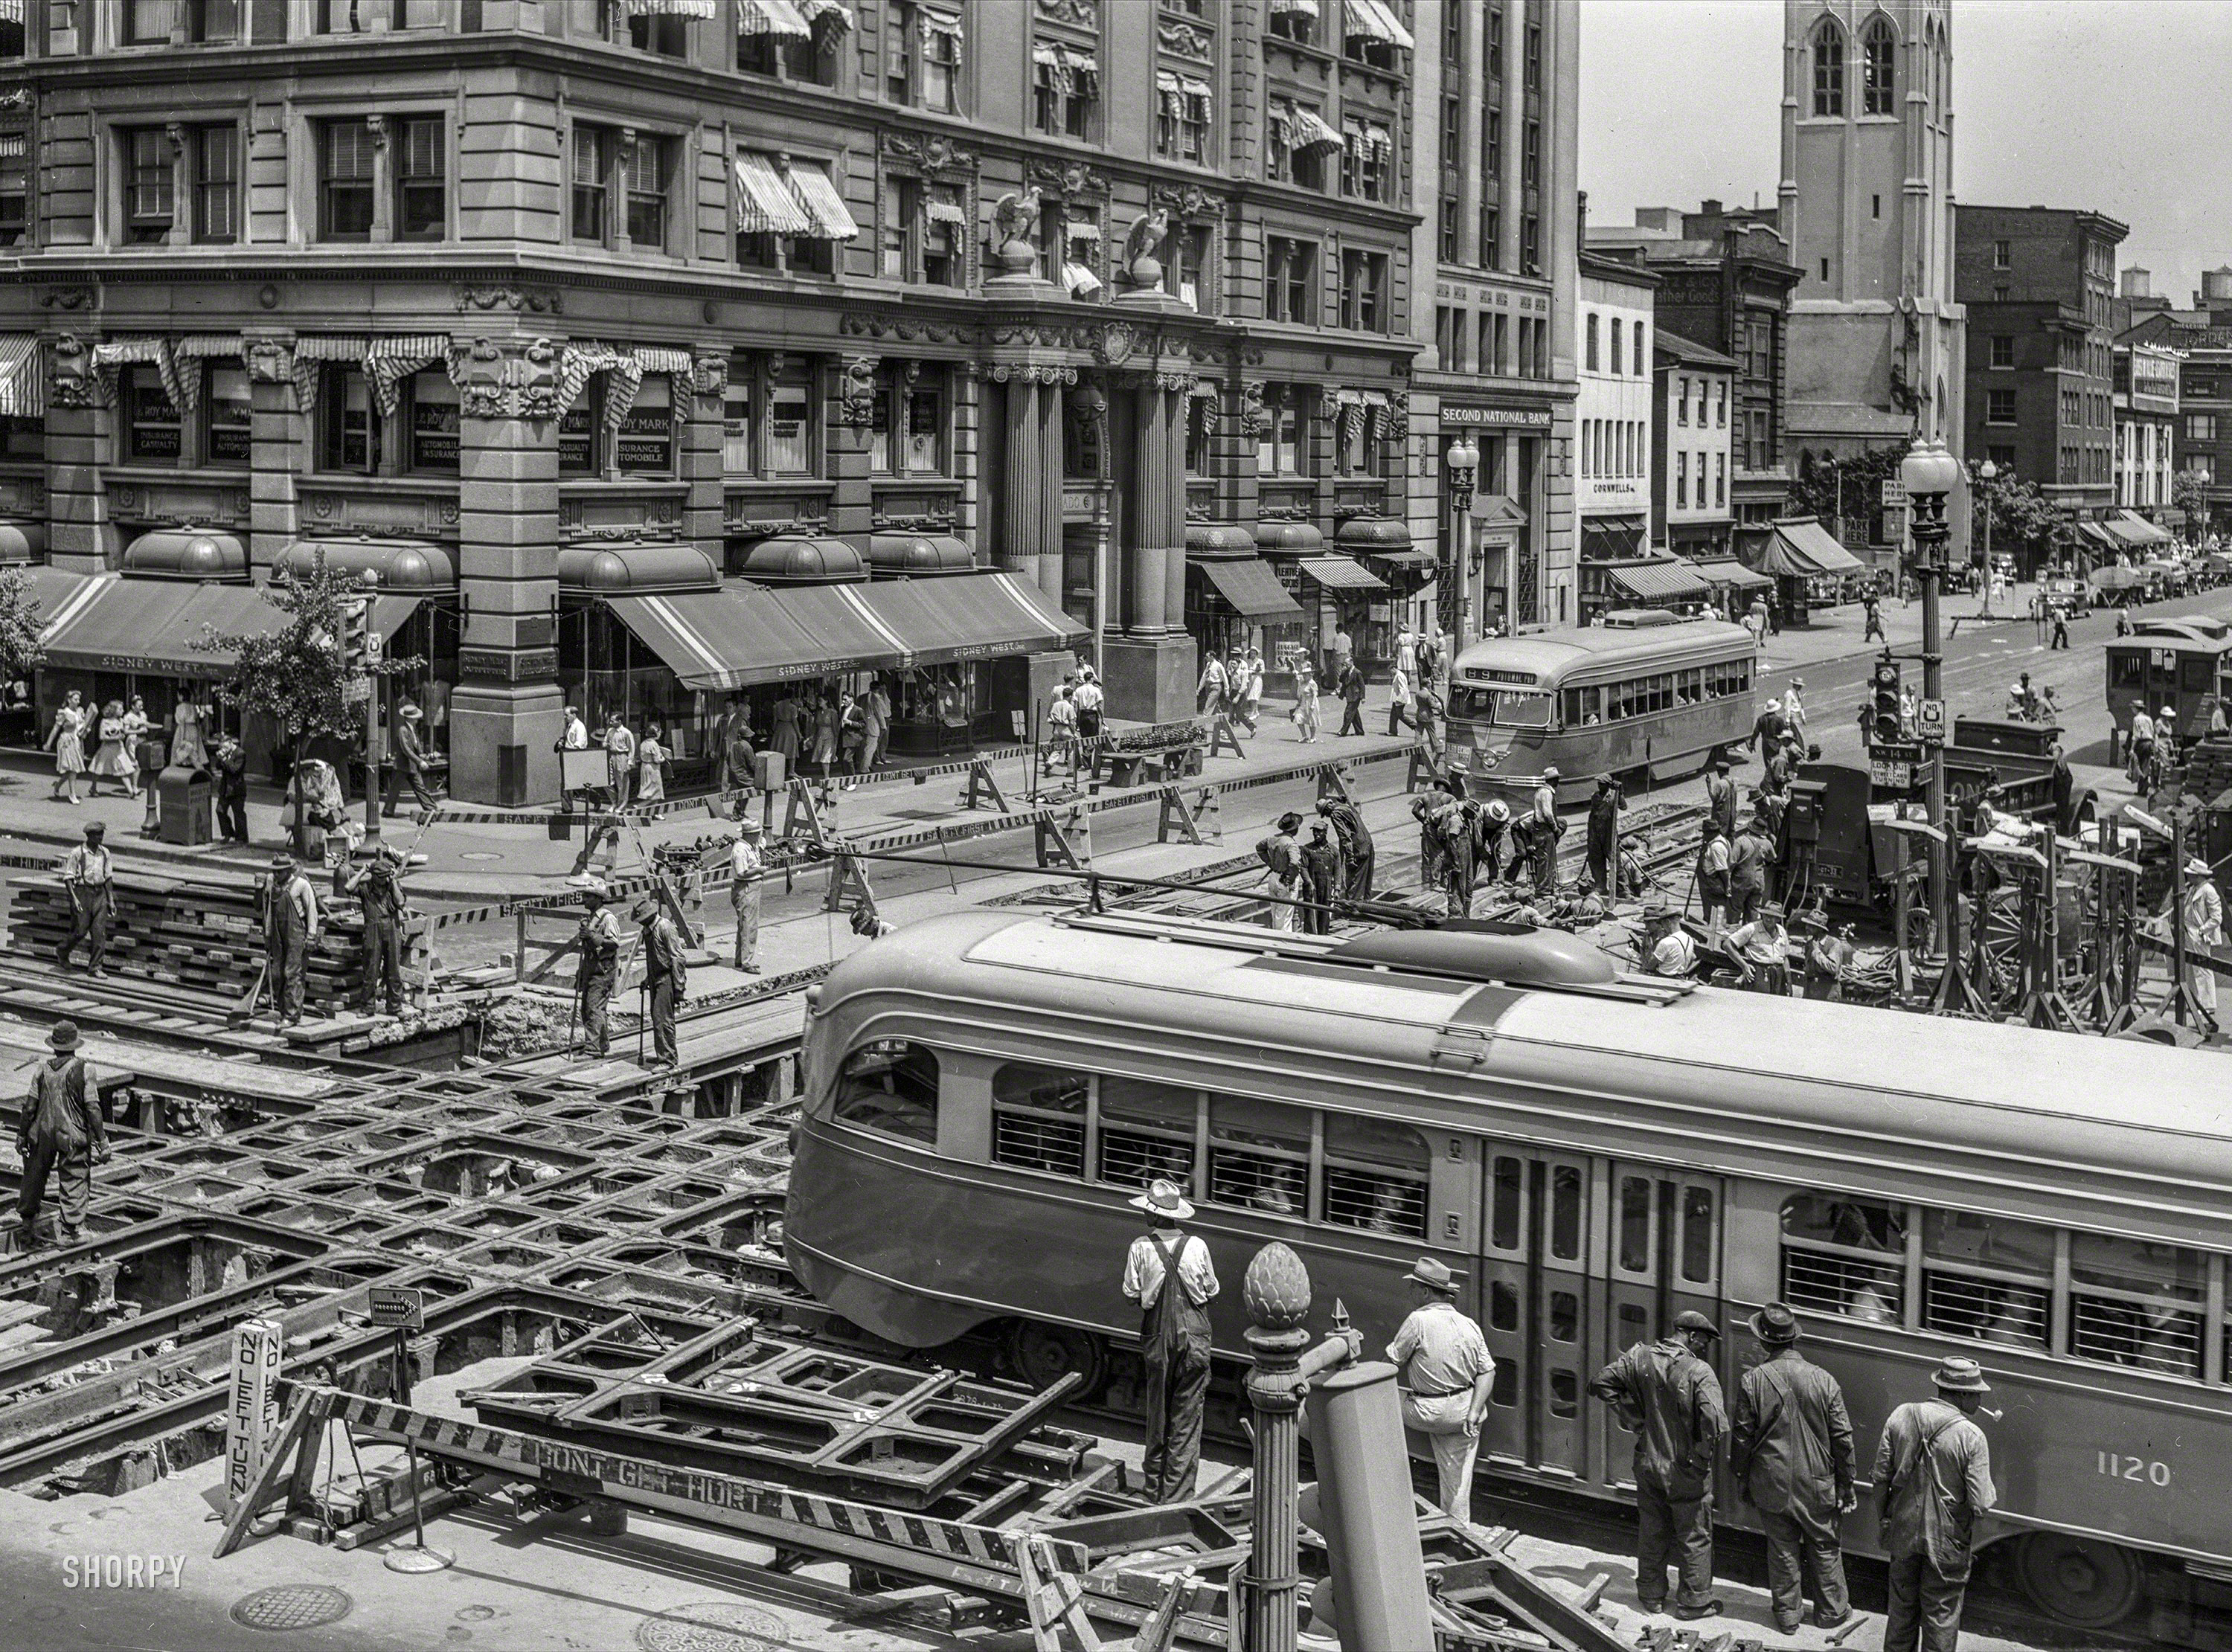 Rare Photos From History: Historical Photos Will Leave You